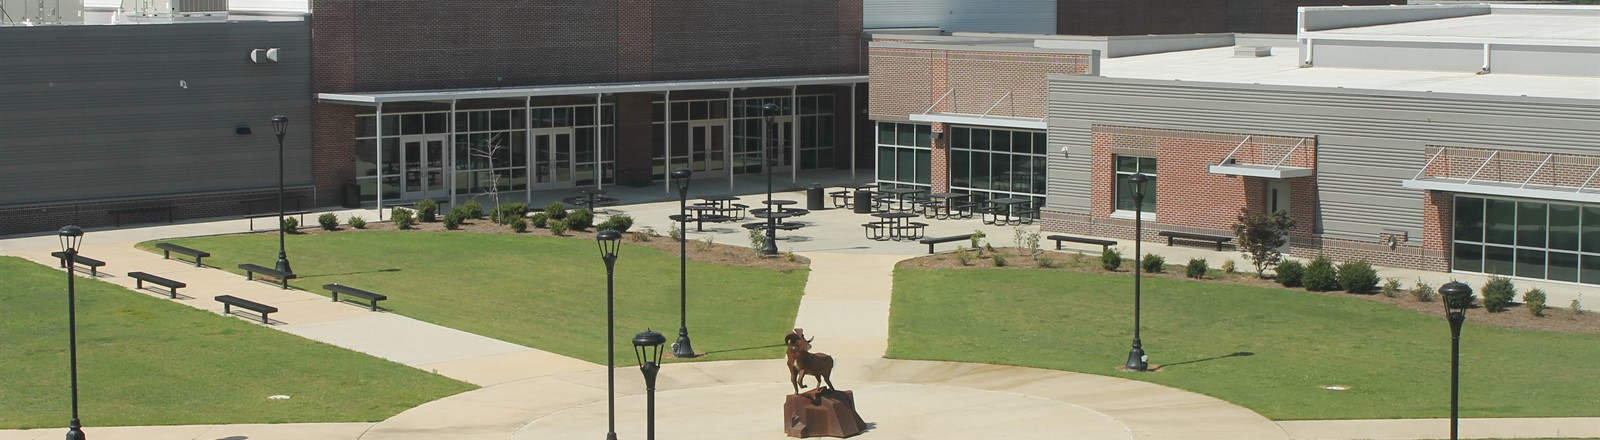 Photo of the courtyard at Worth County High School.